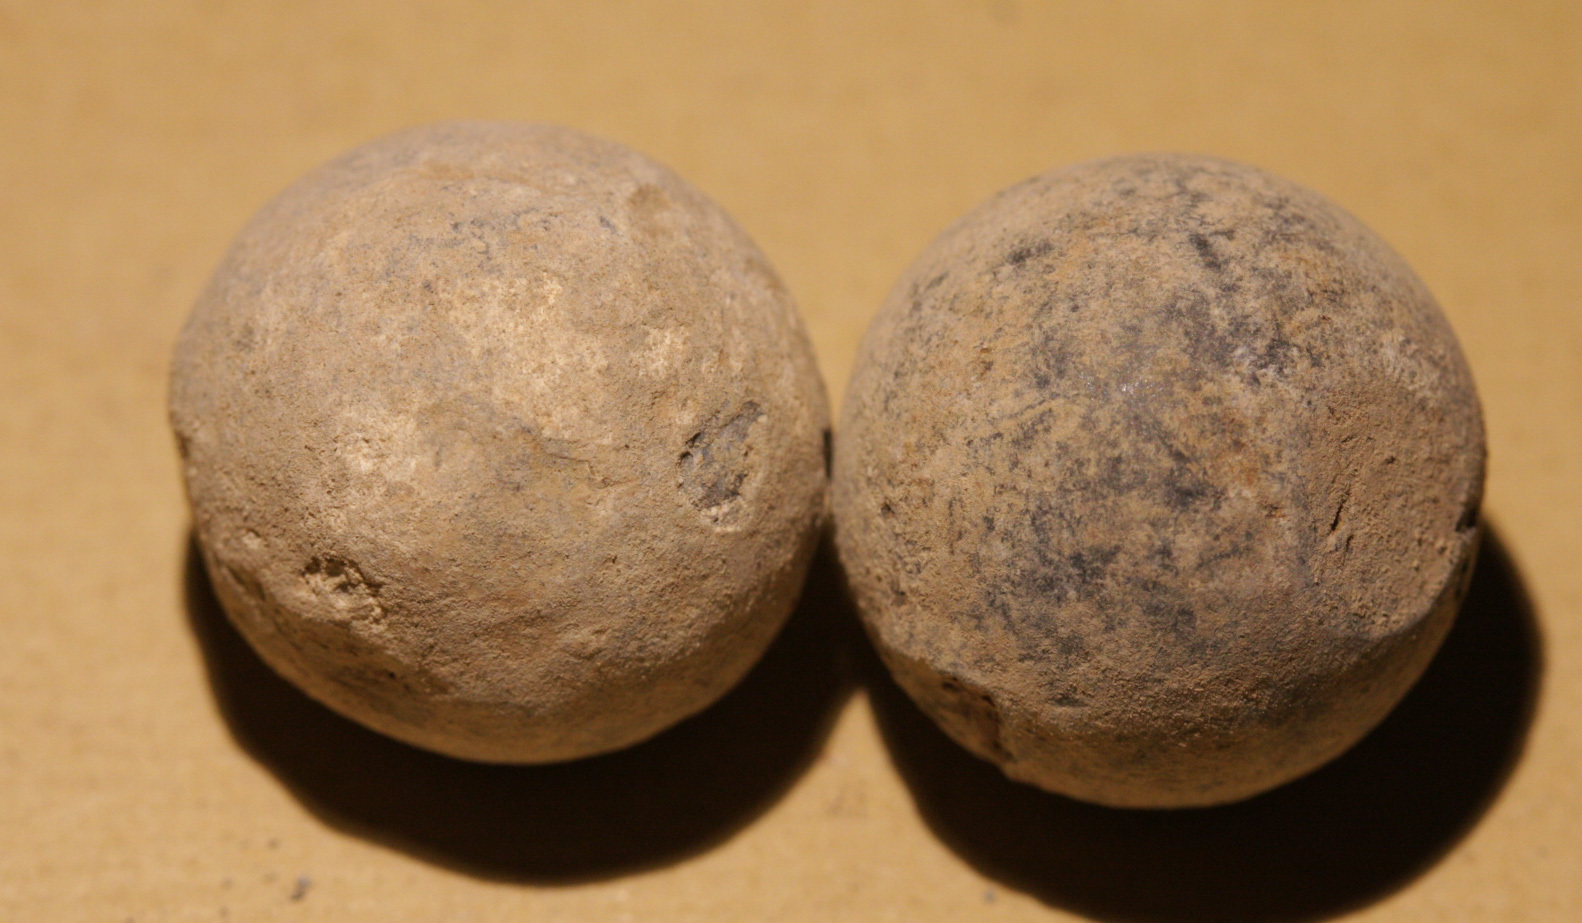 JUST ADDED ON 12/14 - THE BATTLE OF PORT REPUBLIC / JACKSON'S VALLEY CAMPAIGN - Two .69 Caliber Round Balls WB-PR20